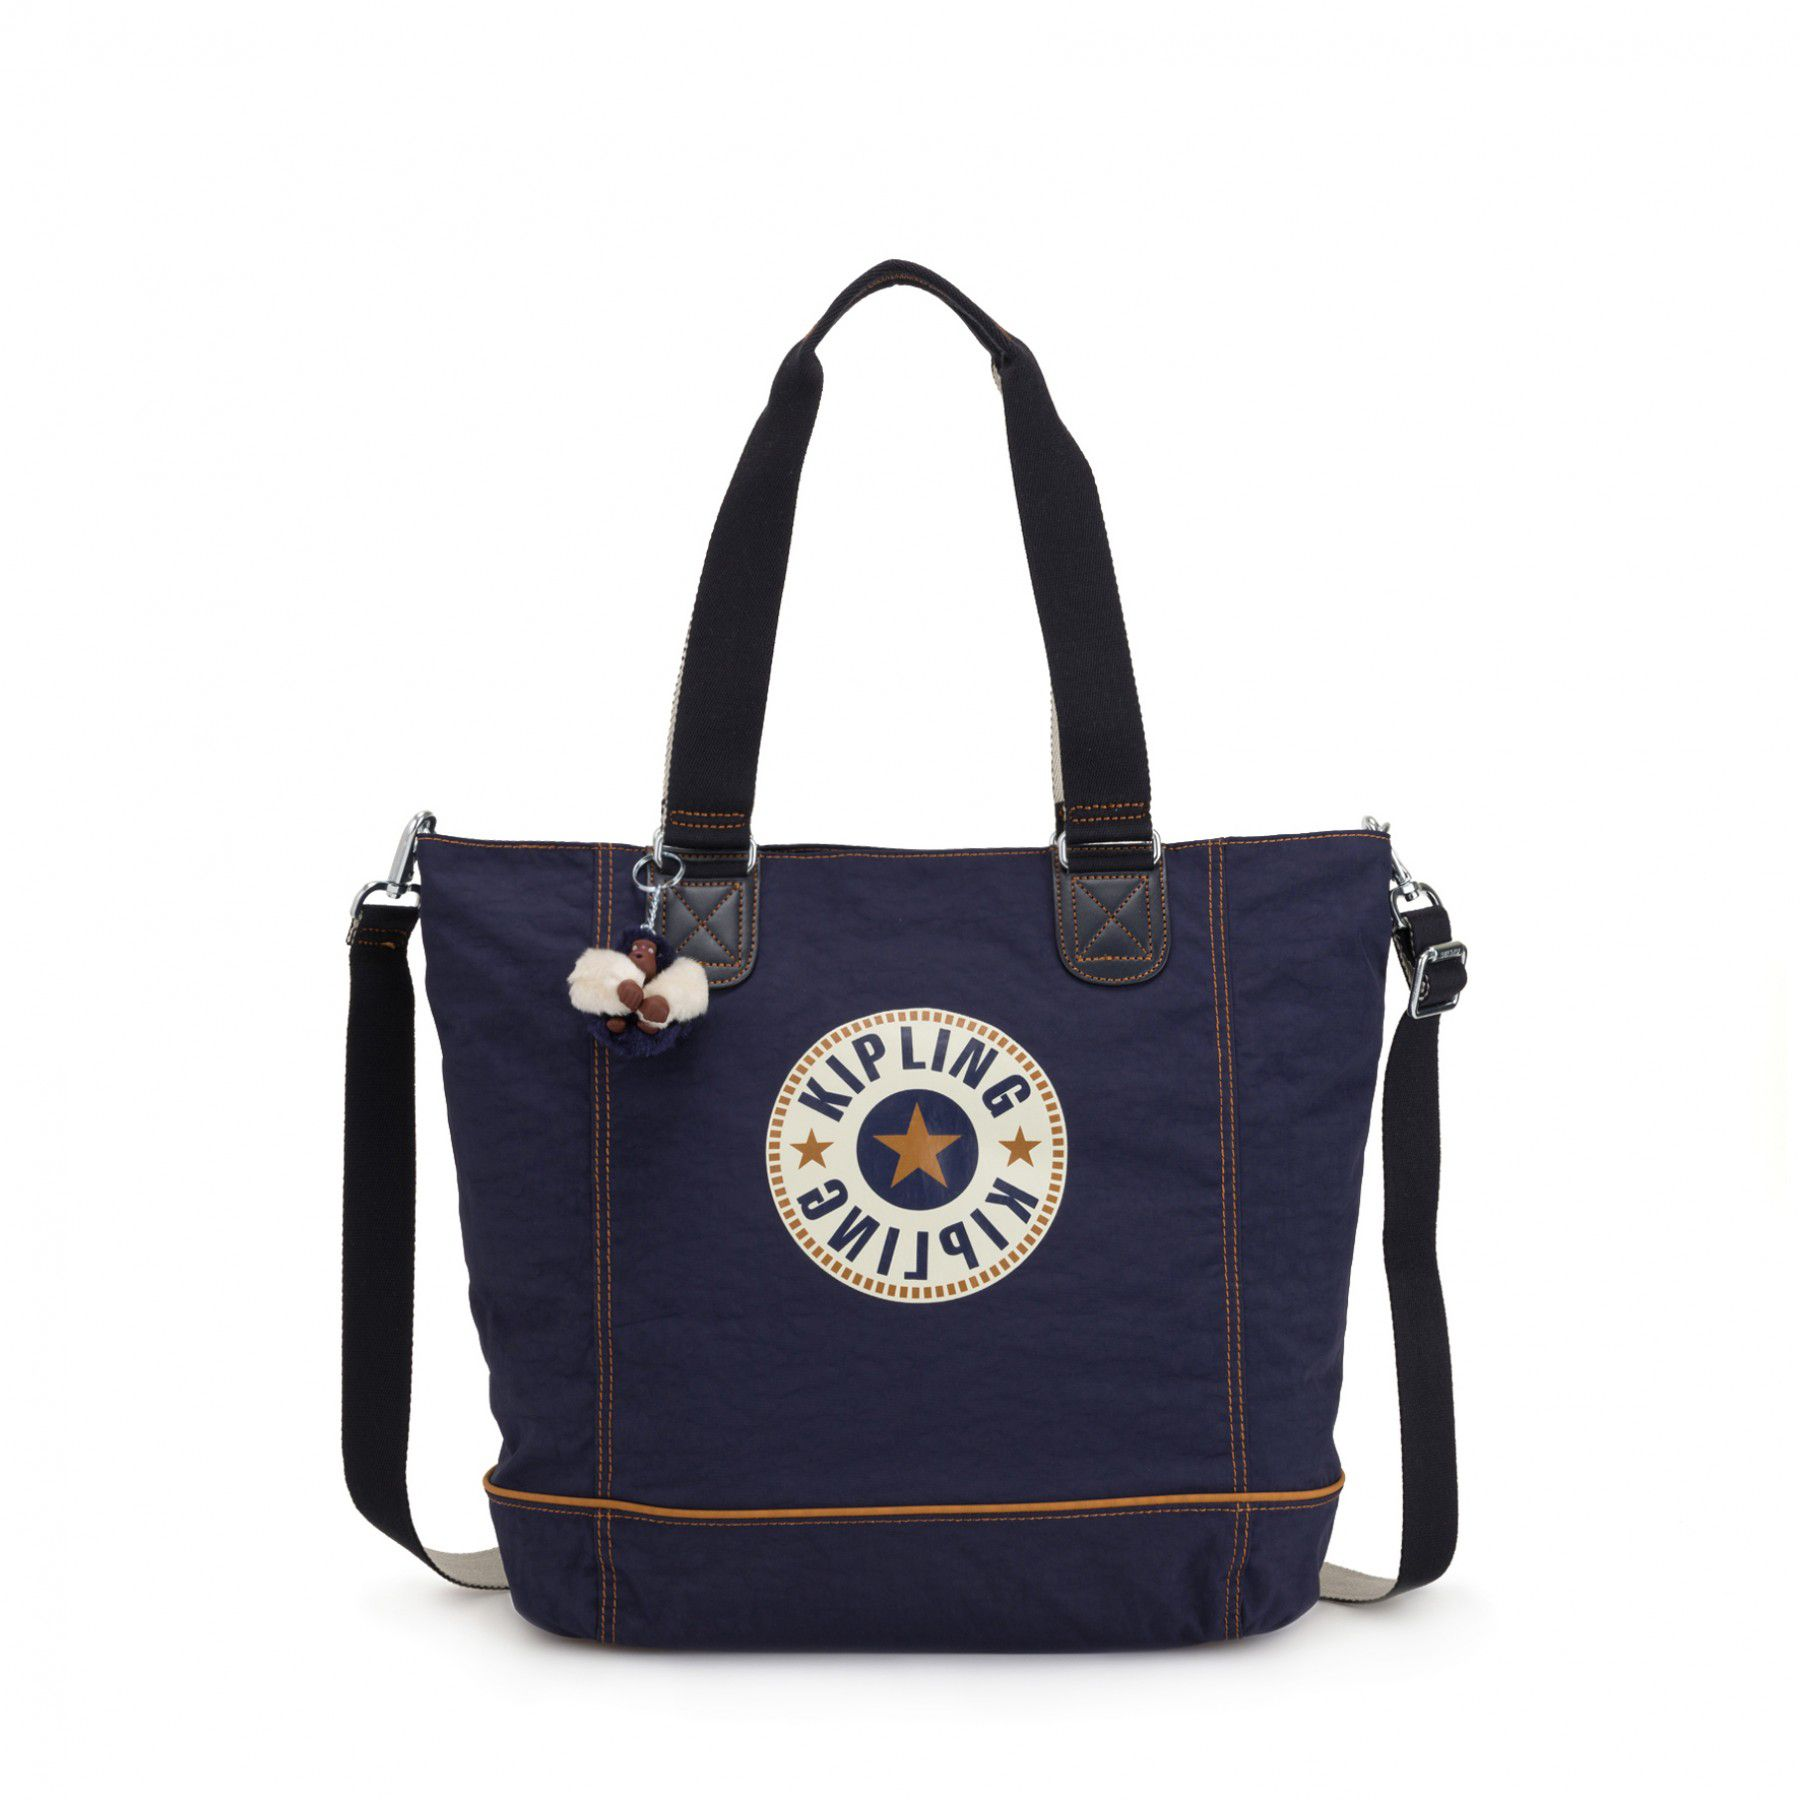 Bolsa Grande Shopper C Kipling Active Blue